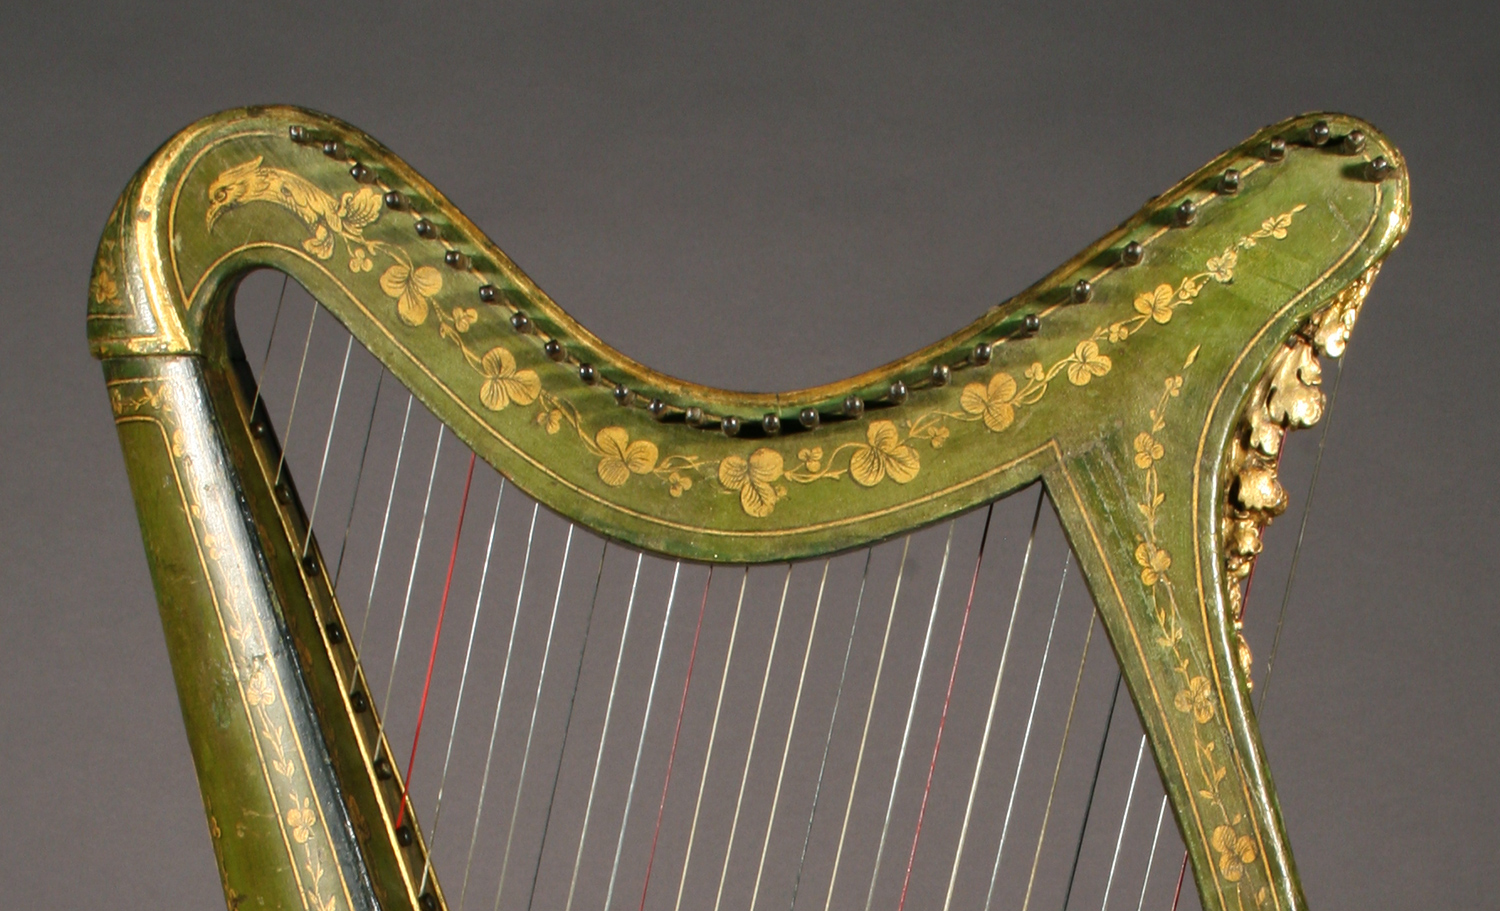 Historic Irish harp with polychrome painted details and gilded carved motifs